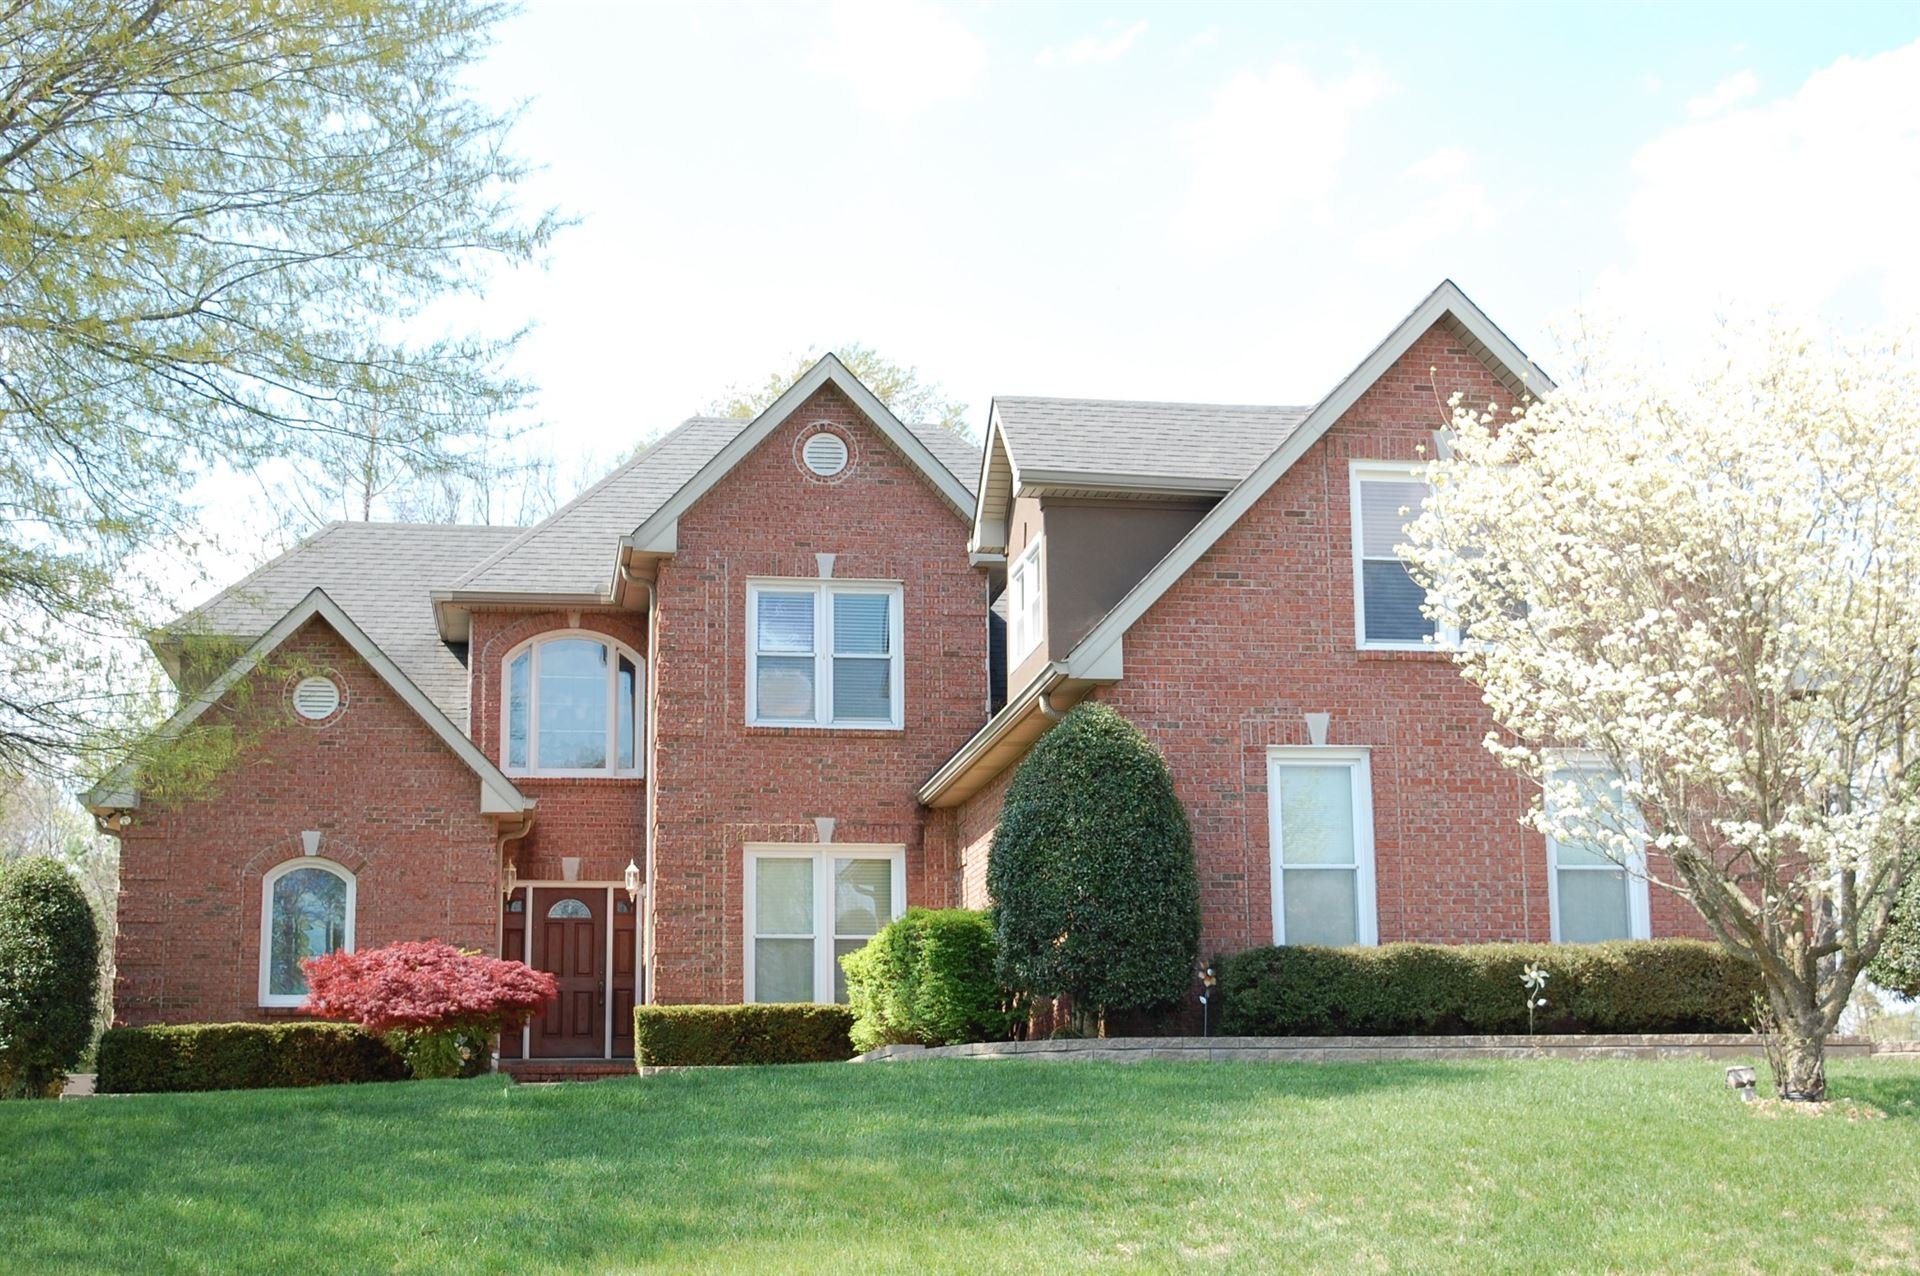 735 Courtland Ave, Clarksville, TN 37043 - MLS#: 2238463